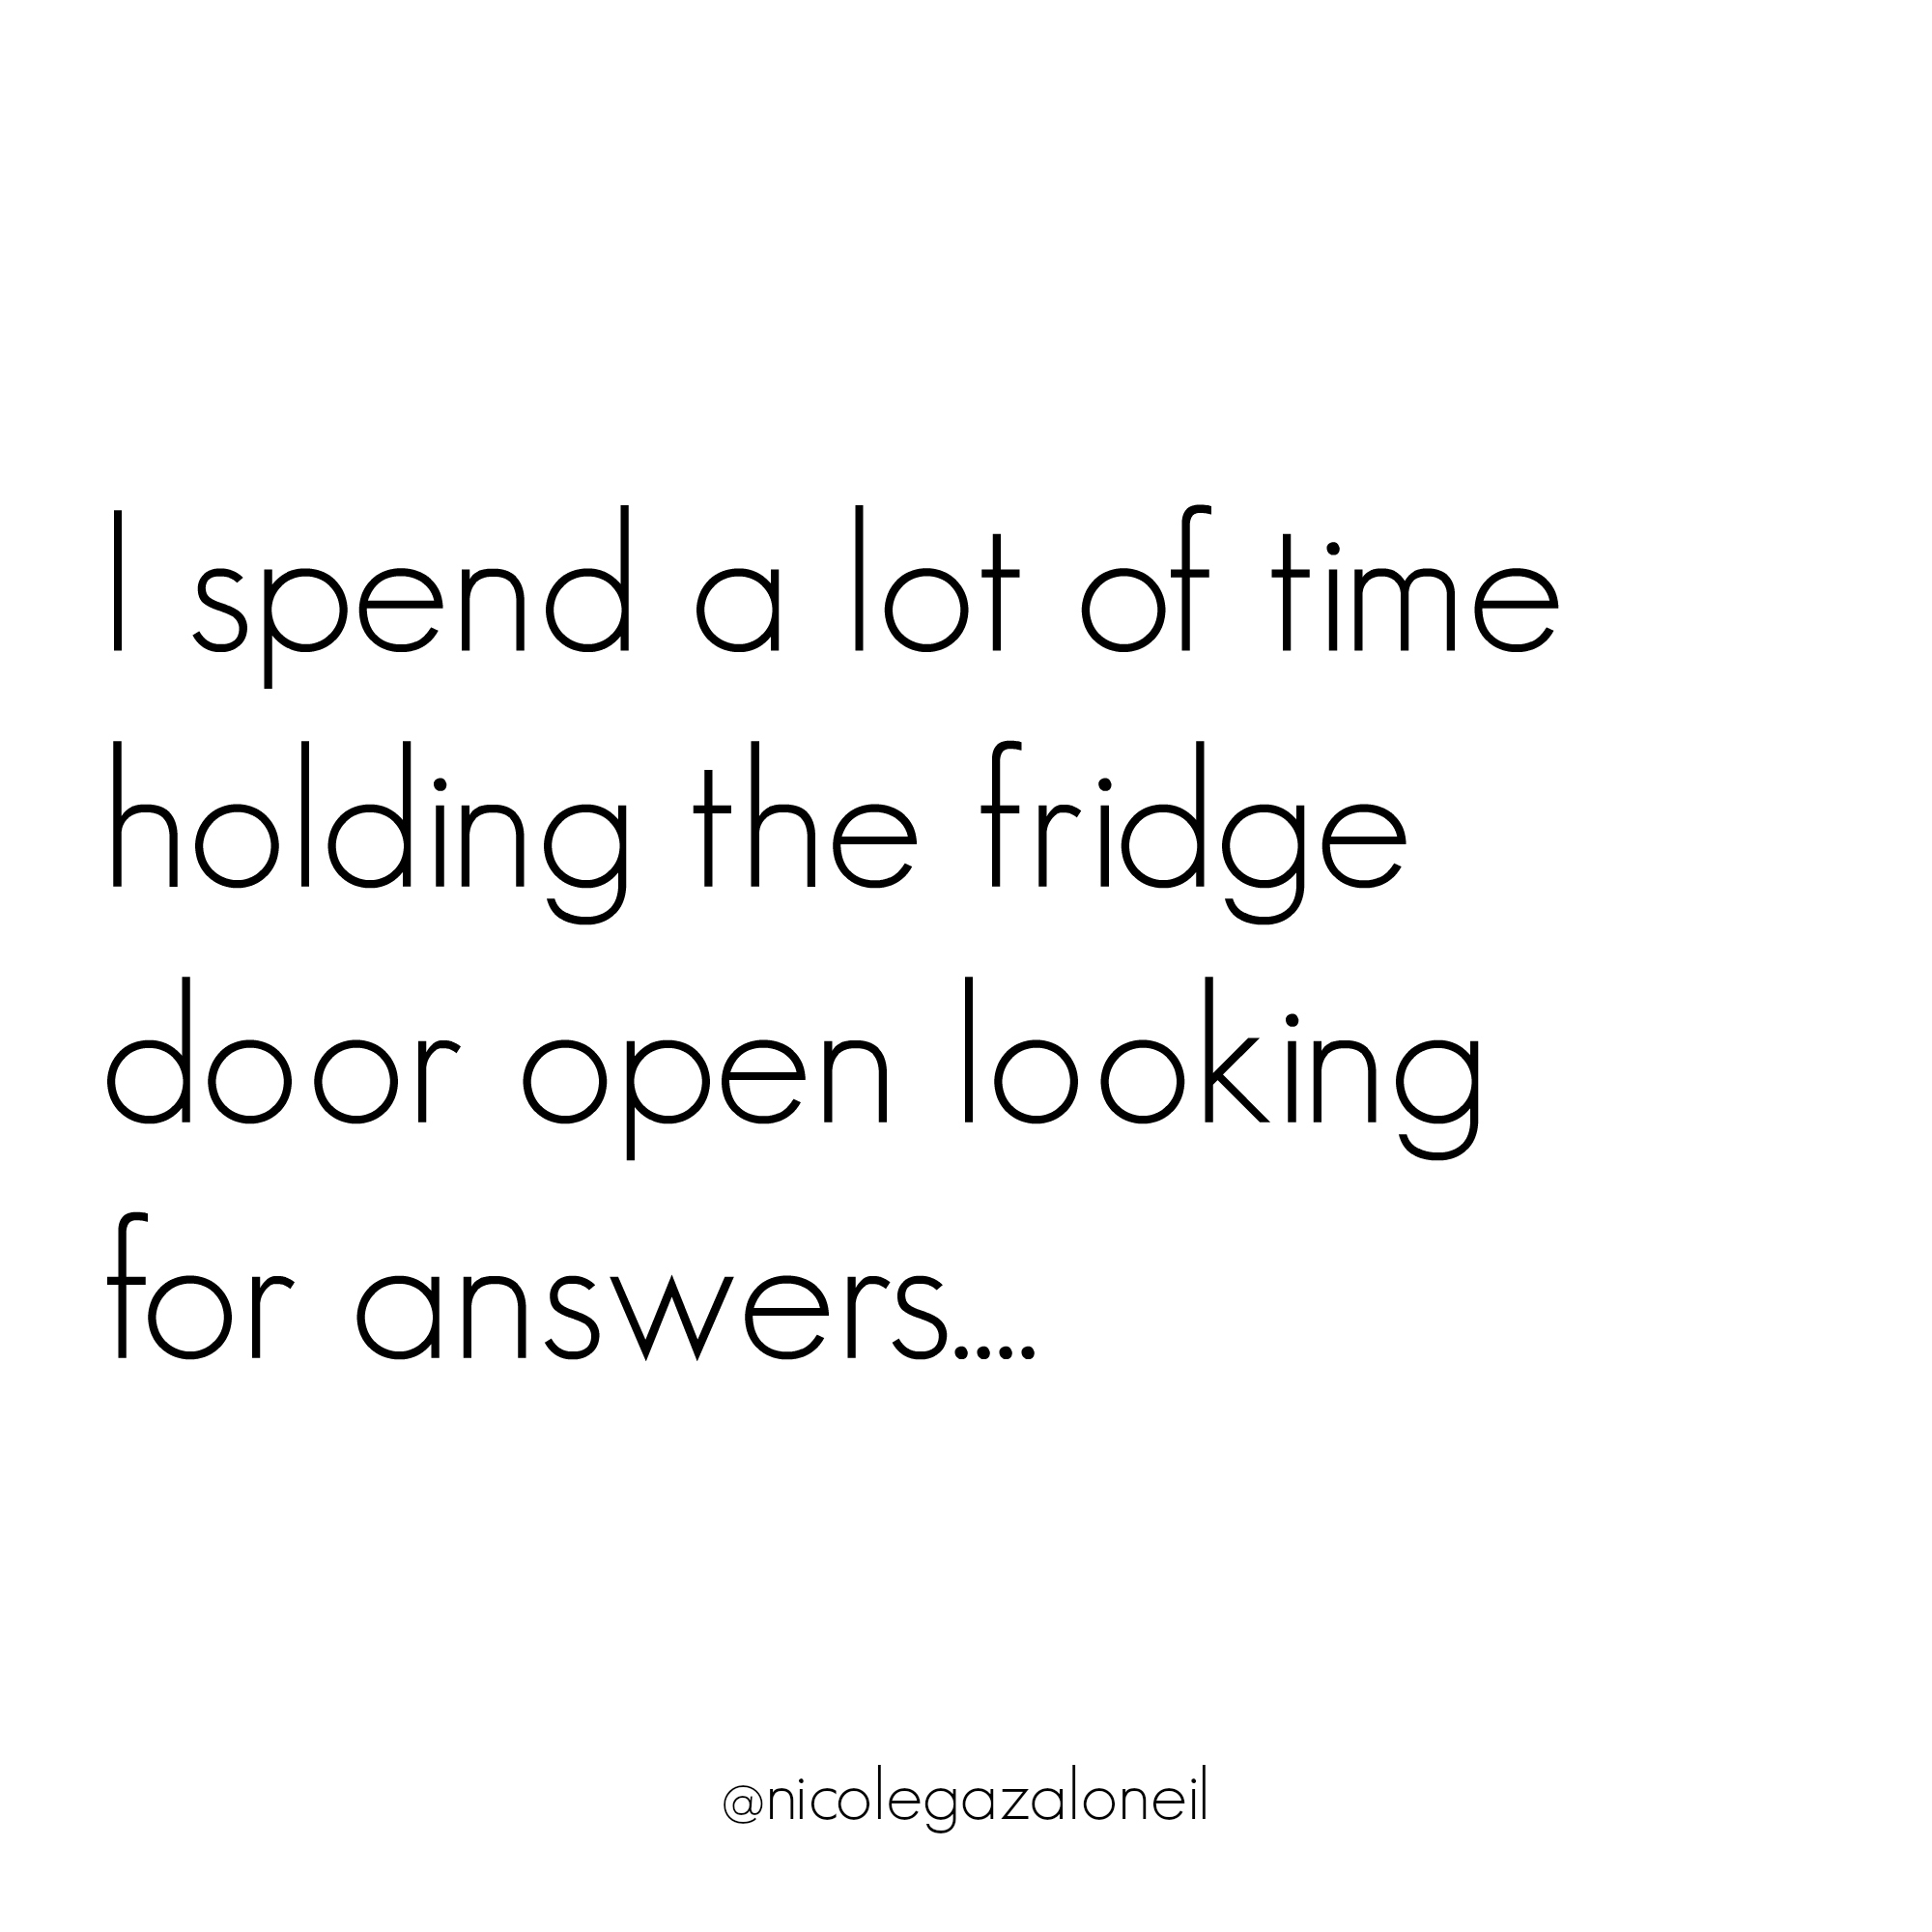 I spend a lot of time holding the fridge door open looking for answers